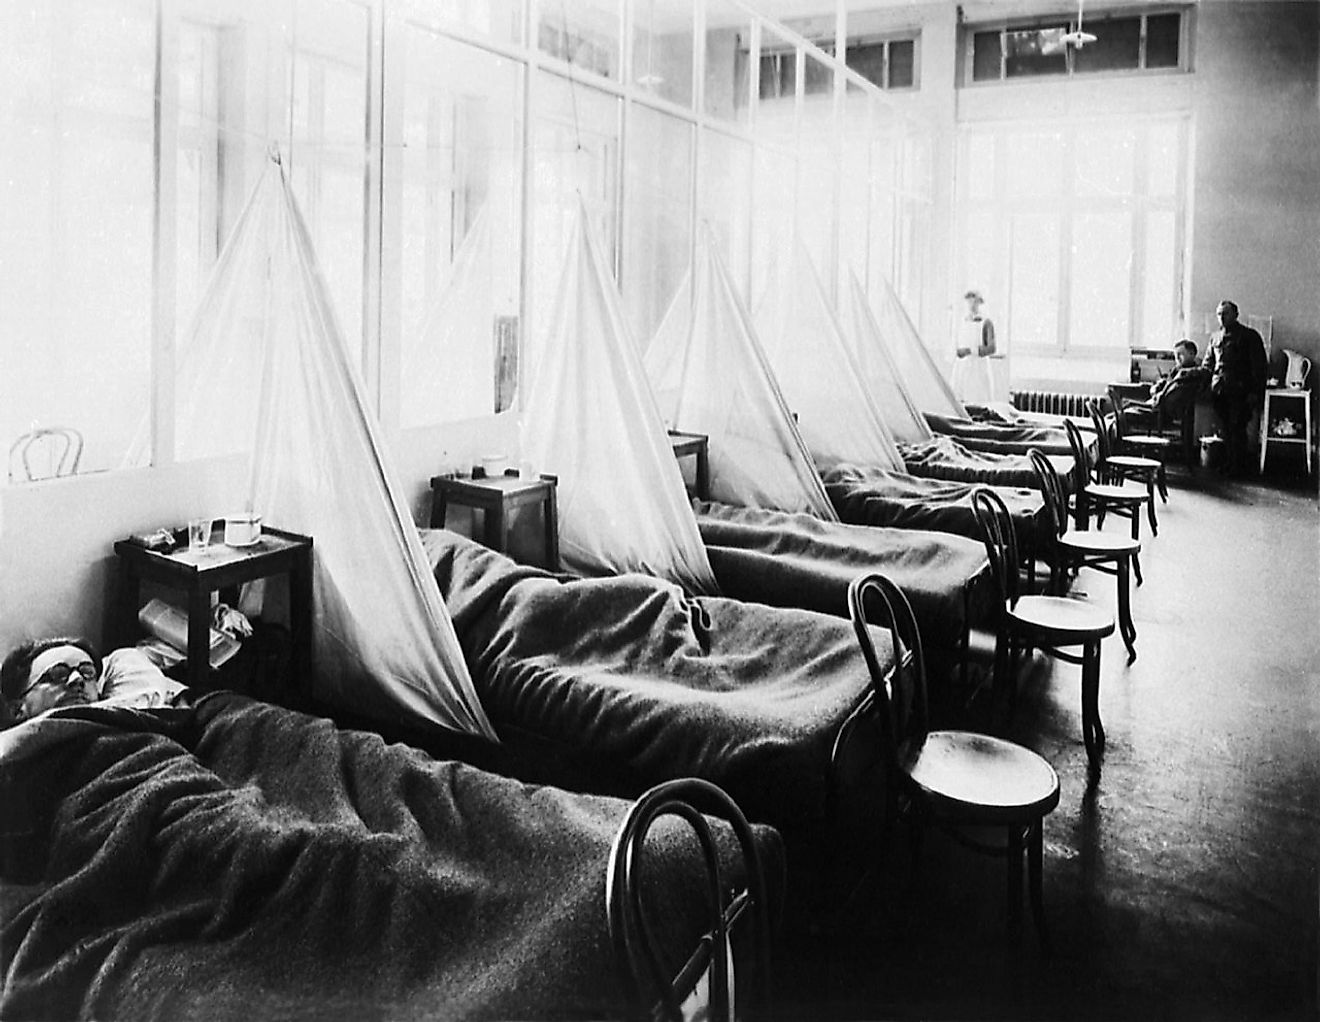 American Expeditionary Force victims of the Spanish flu at U.S. Army Camp Hospital no. 45 in Aix-les-Bains, France, in 1918. Image credit: Uncredited U.S. Army photographer/Wikimedia.org